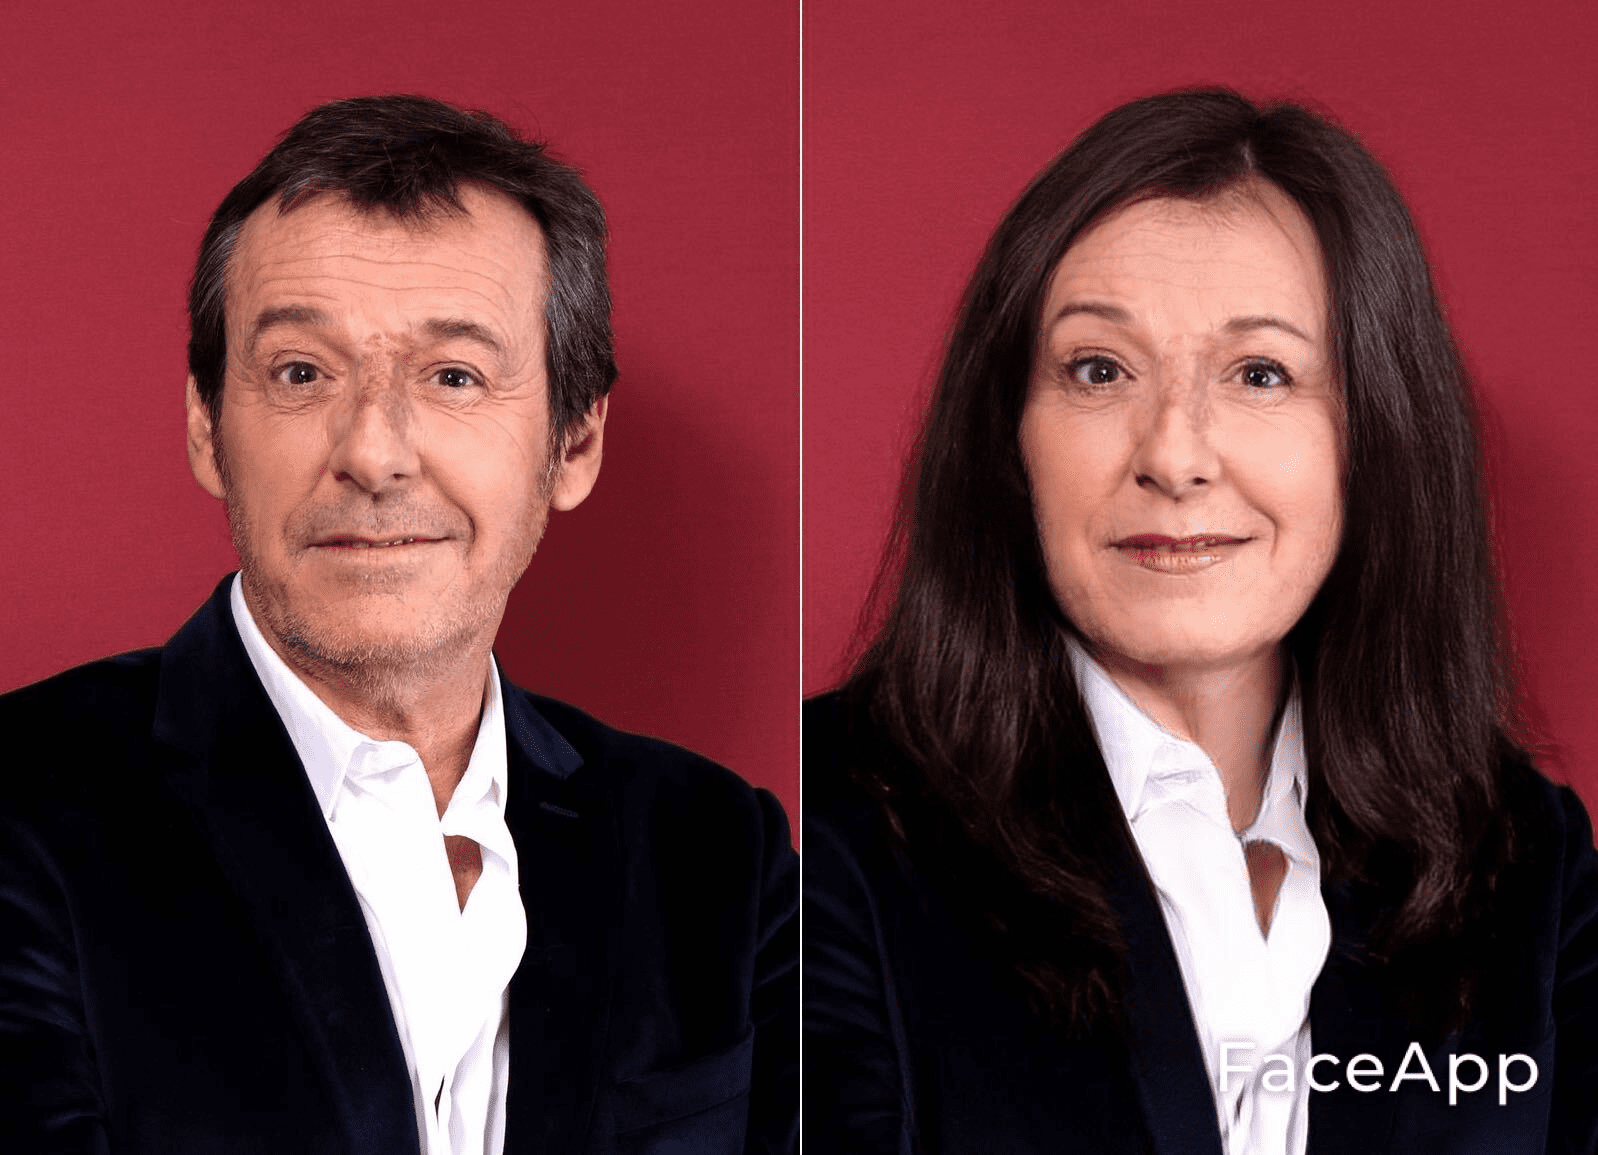 Jean-Luc Reichmann en femme. l Source : Getty Images/Face App